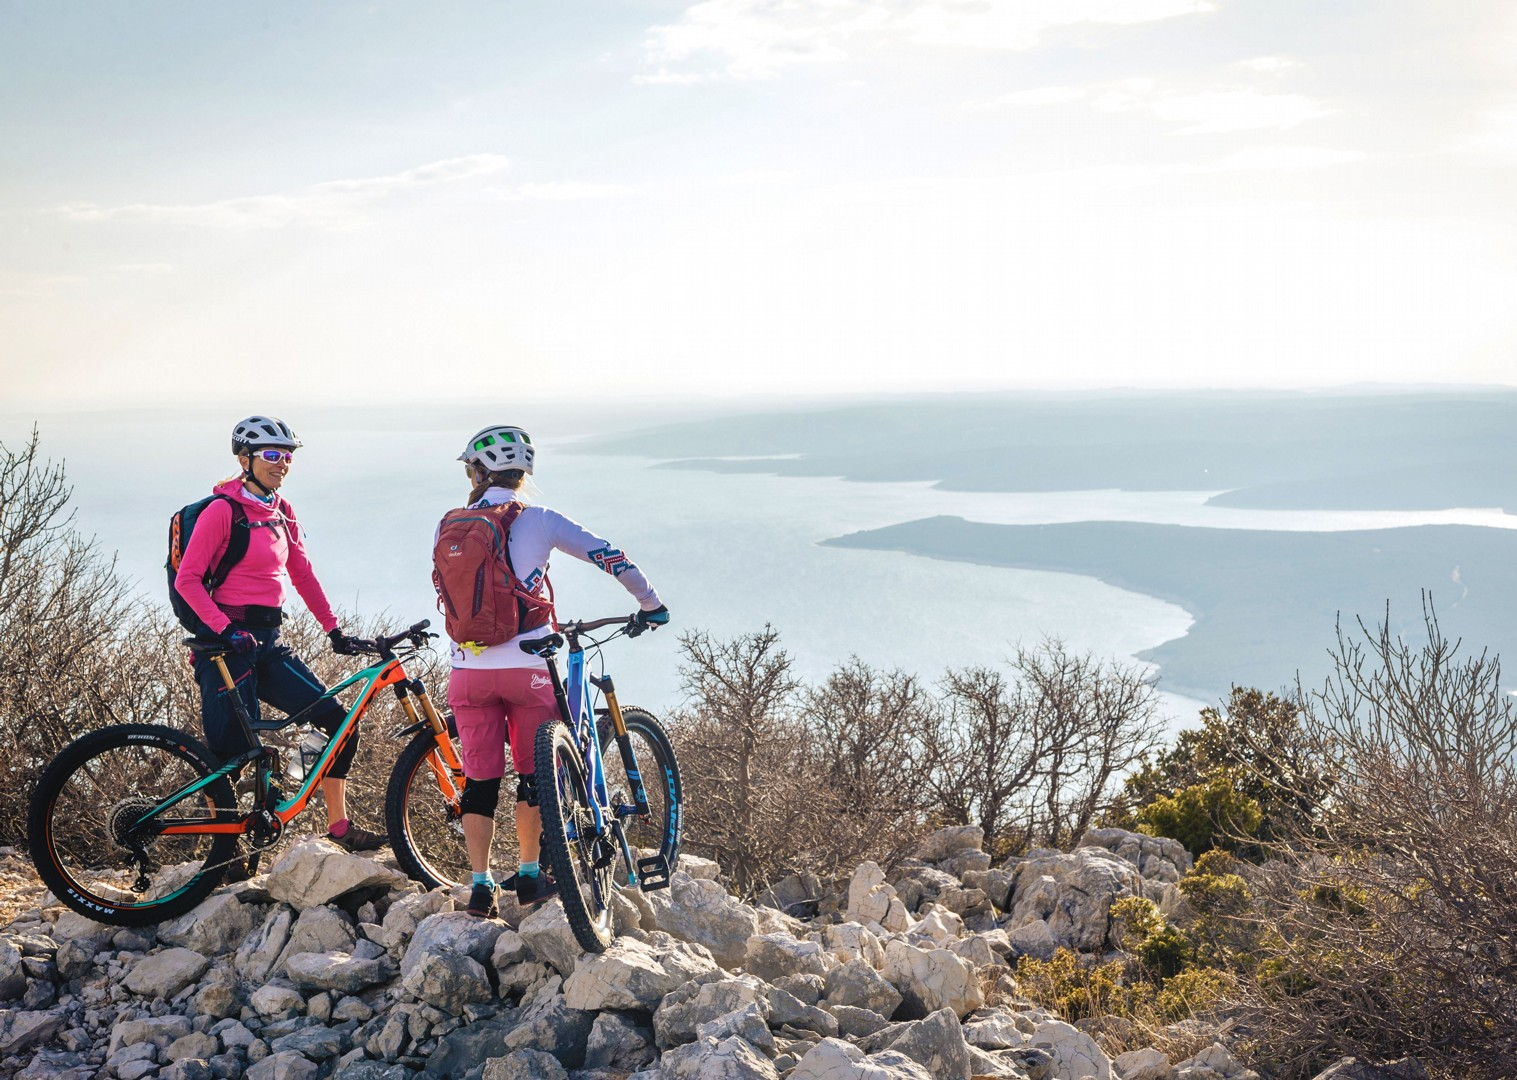 rabac-biking-in-croatia-guided-holiday-skedaddle.jpg - NEW! Croatia - Terra Magica - Mountain Biking